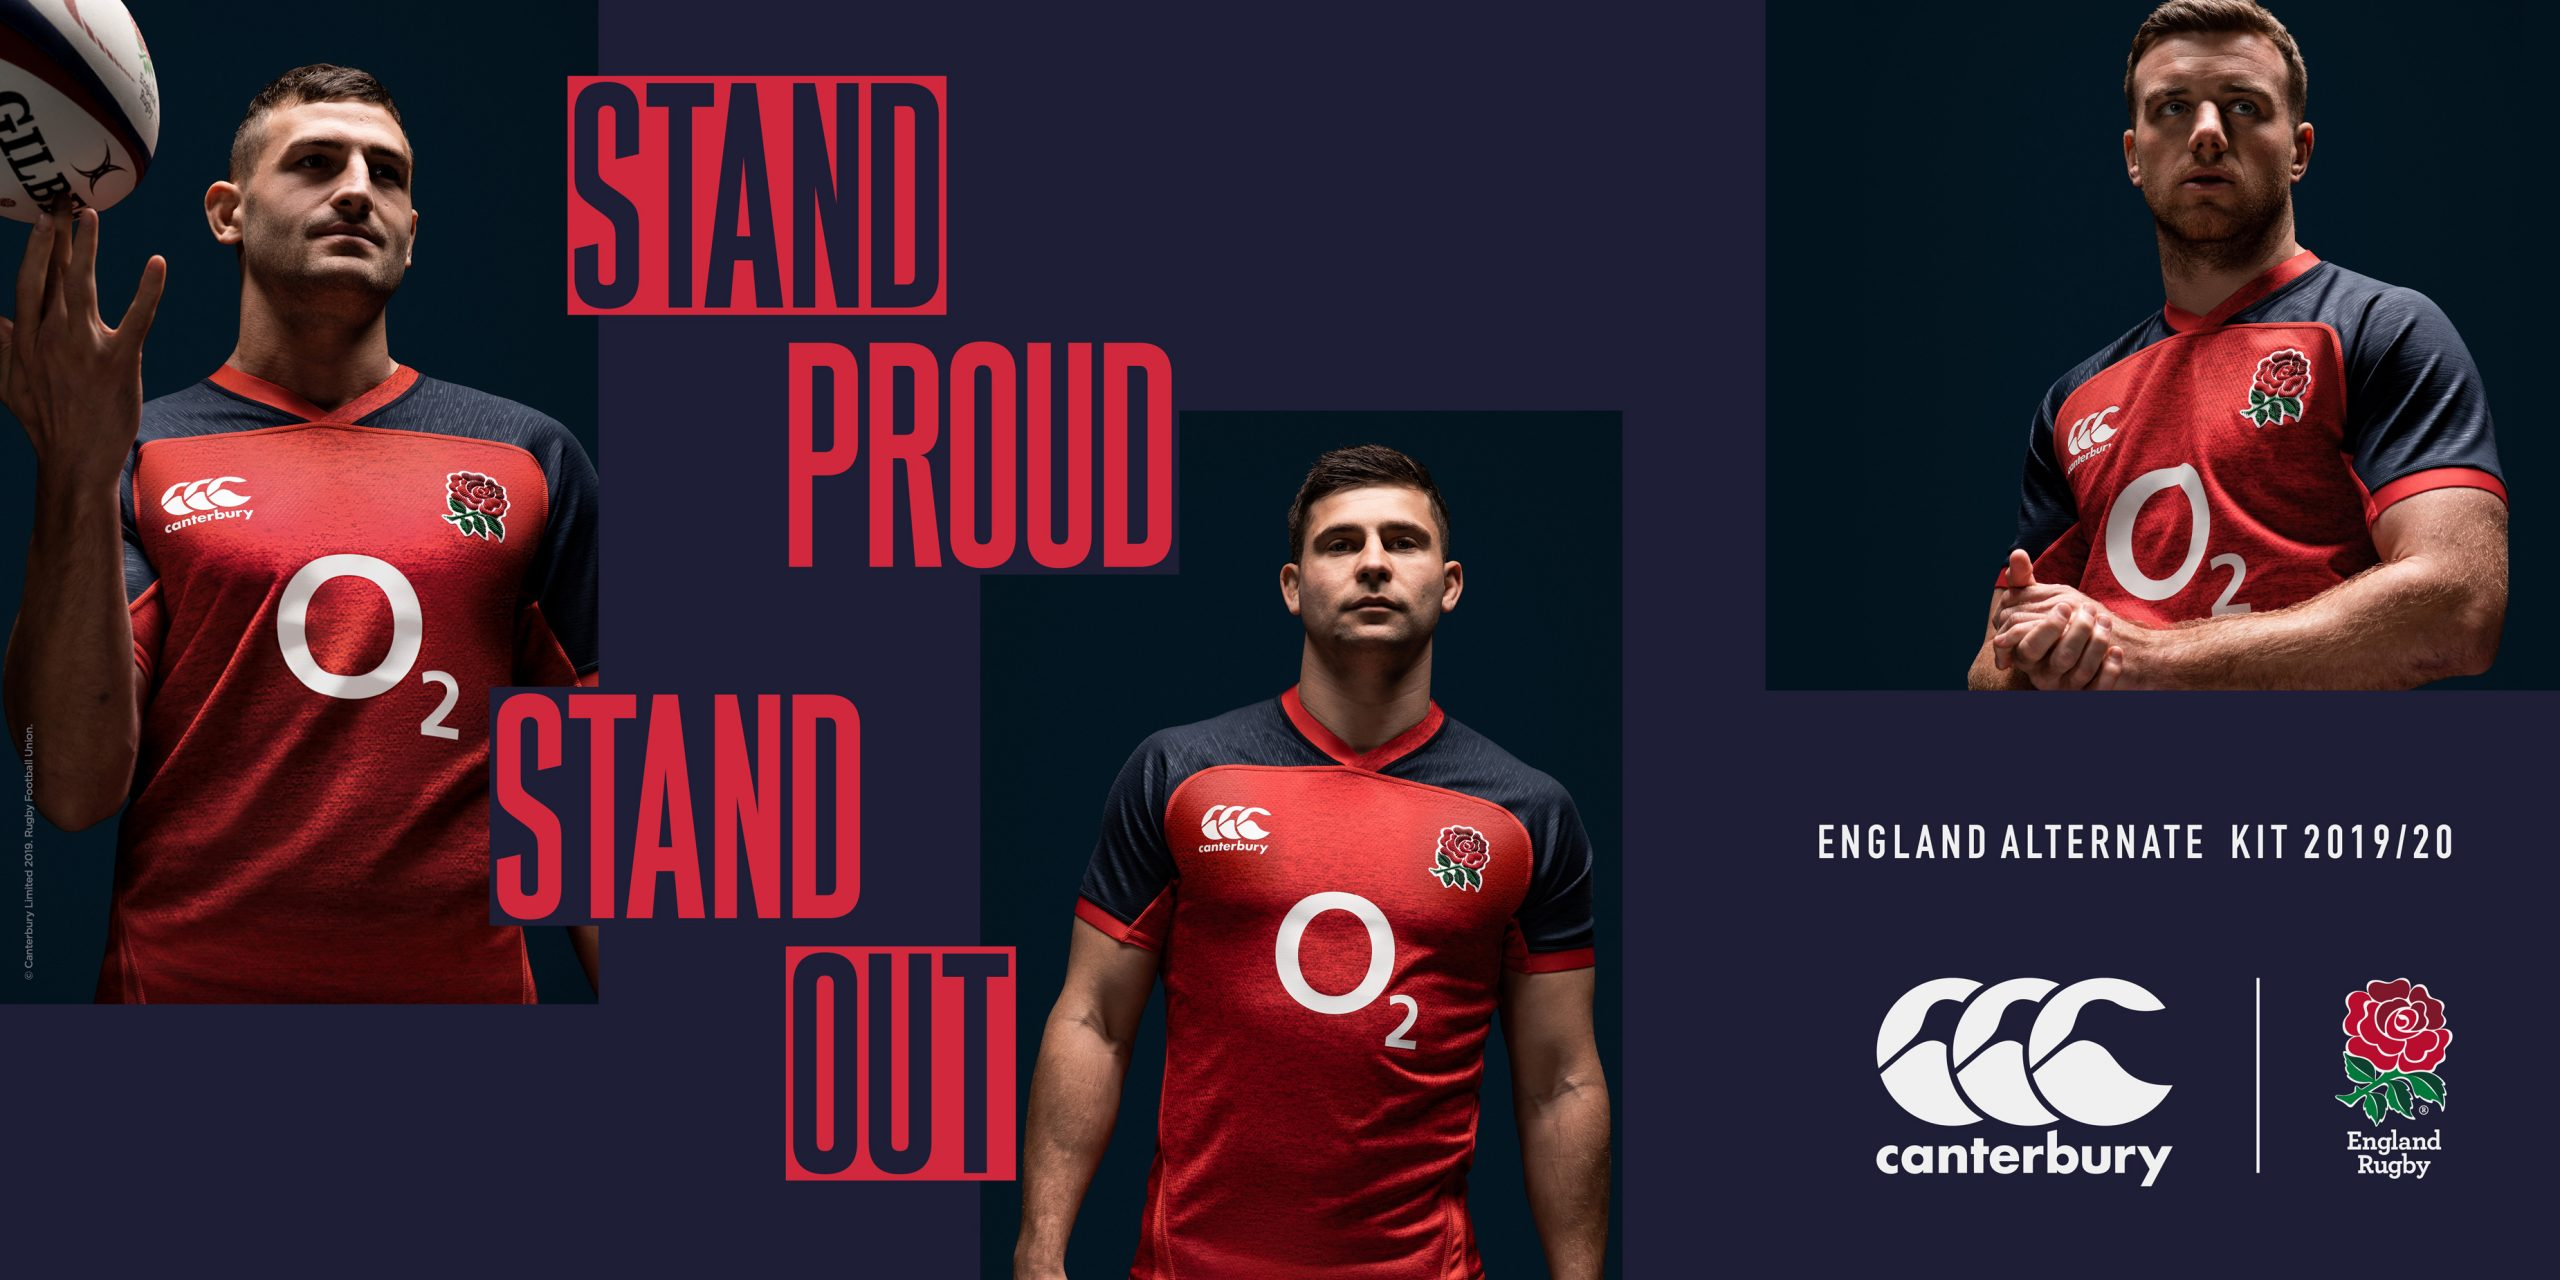 Canterbury_CCC-England-2019KitLaunch-Landscape-3840×1920-Alternate